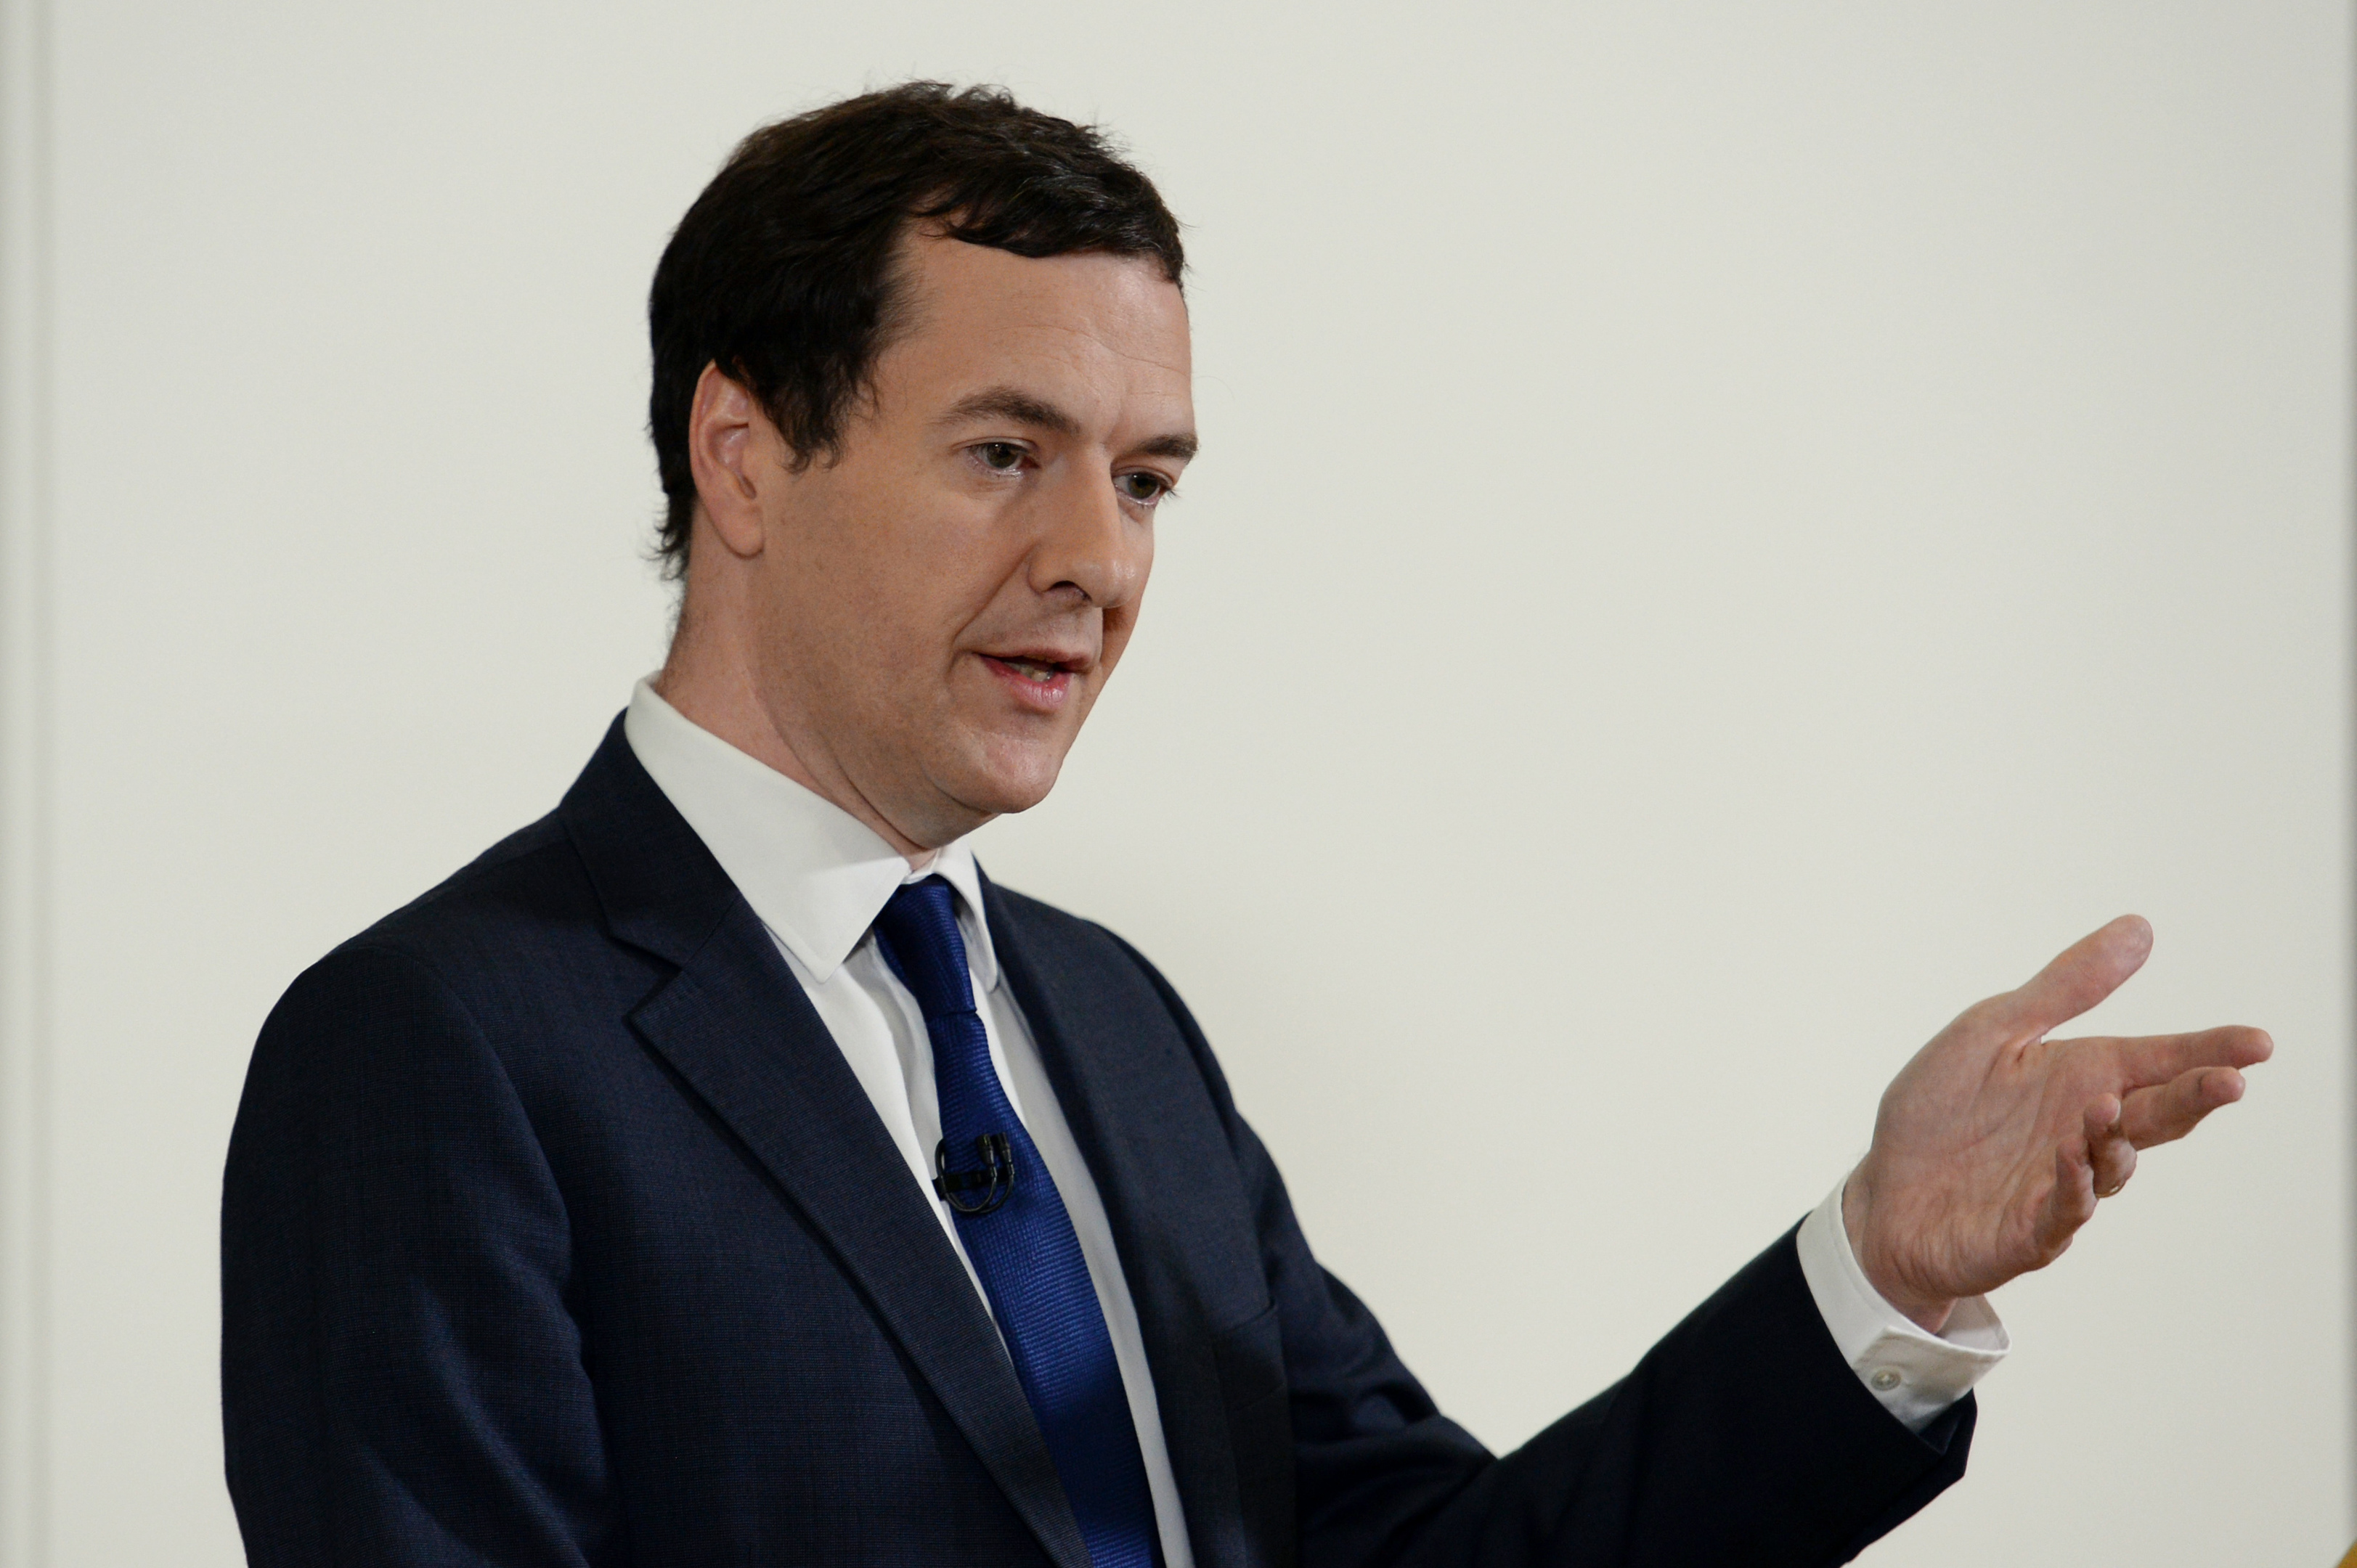 Chancellor George Osborne holds a press conference at The Treasury, London, where he moved to try to calm market turmoil triggered by the pro-Brexit vote.